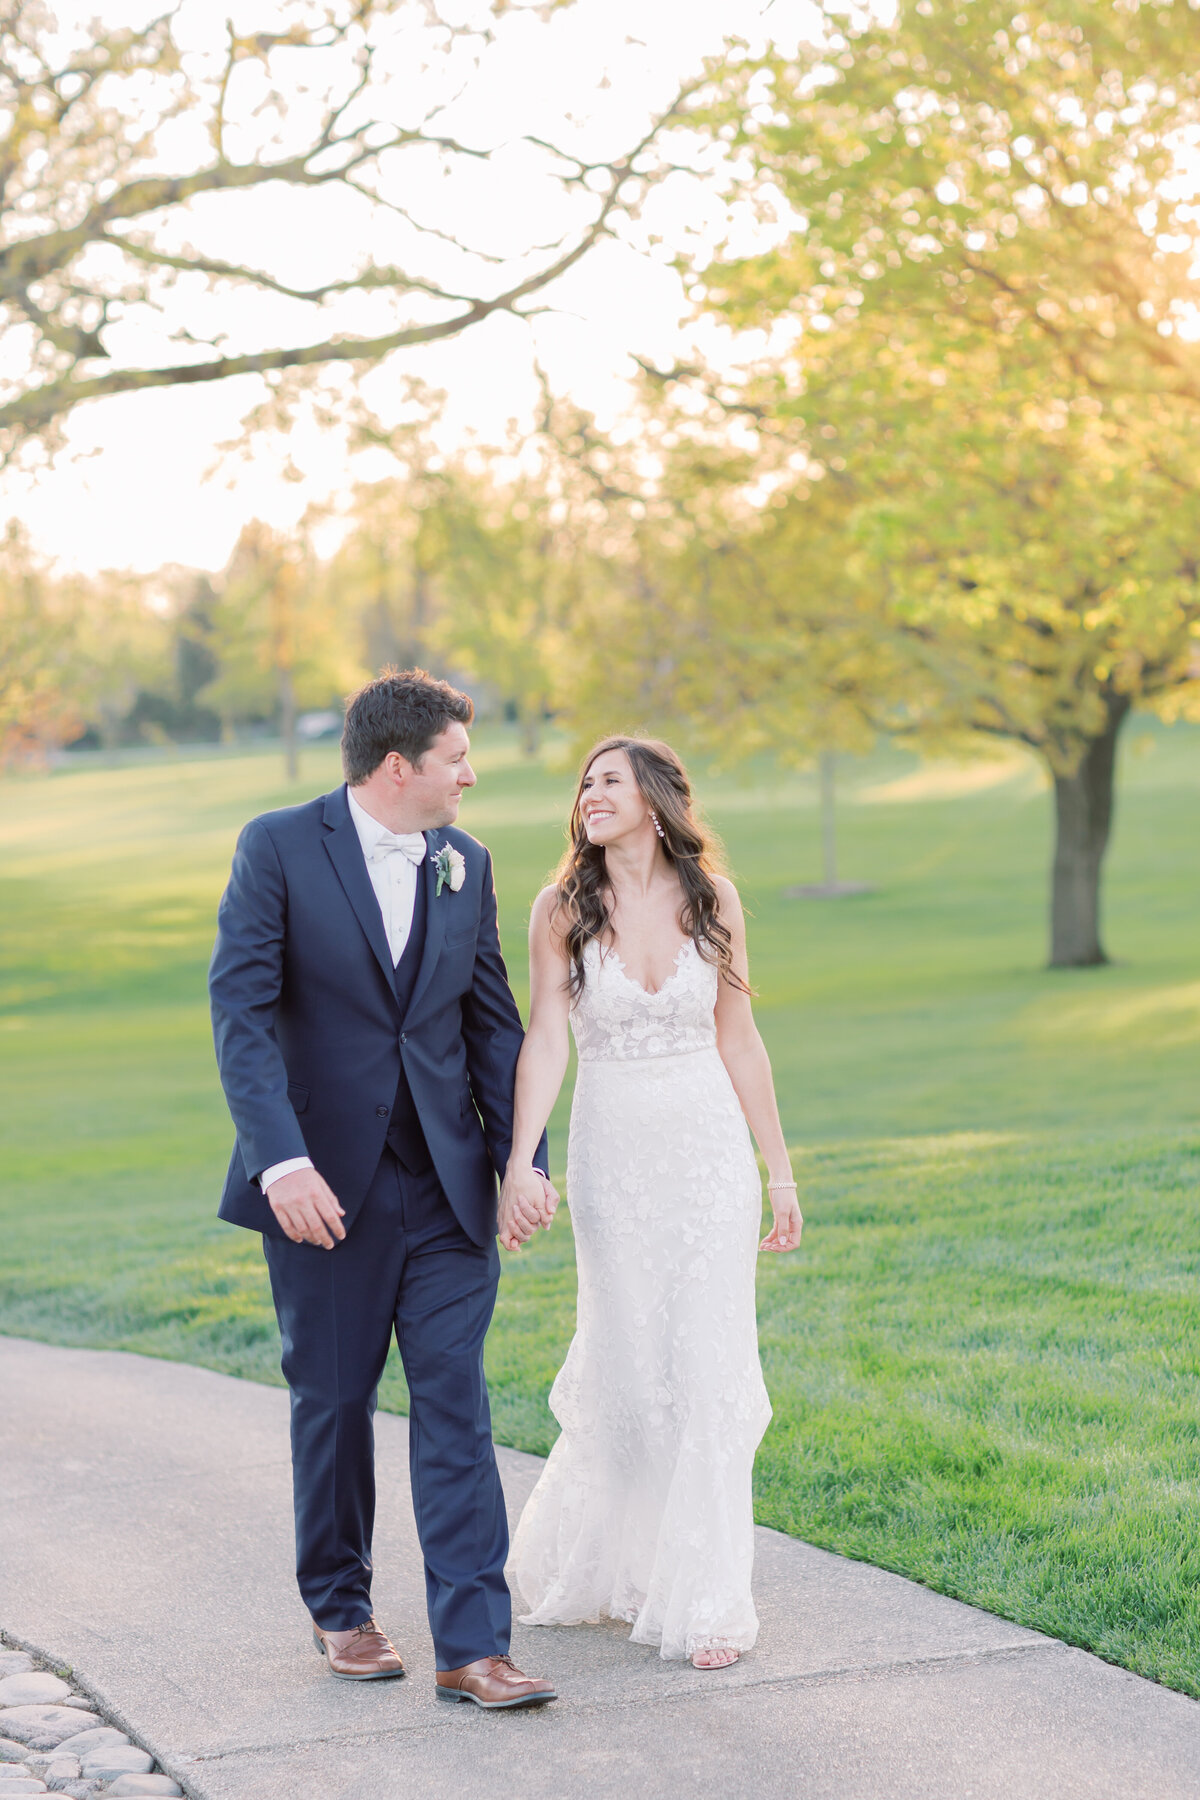 TiffaneyChildsPhotography-ChicagoWeddingPhotographer-Chloe+Jon-HinsdaleCountryClubWedding-BridalPortraits-145